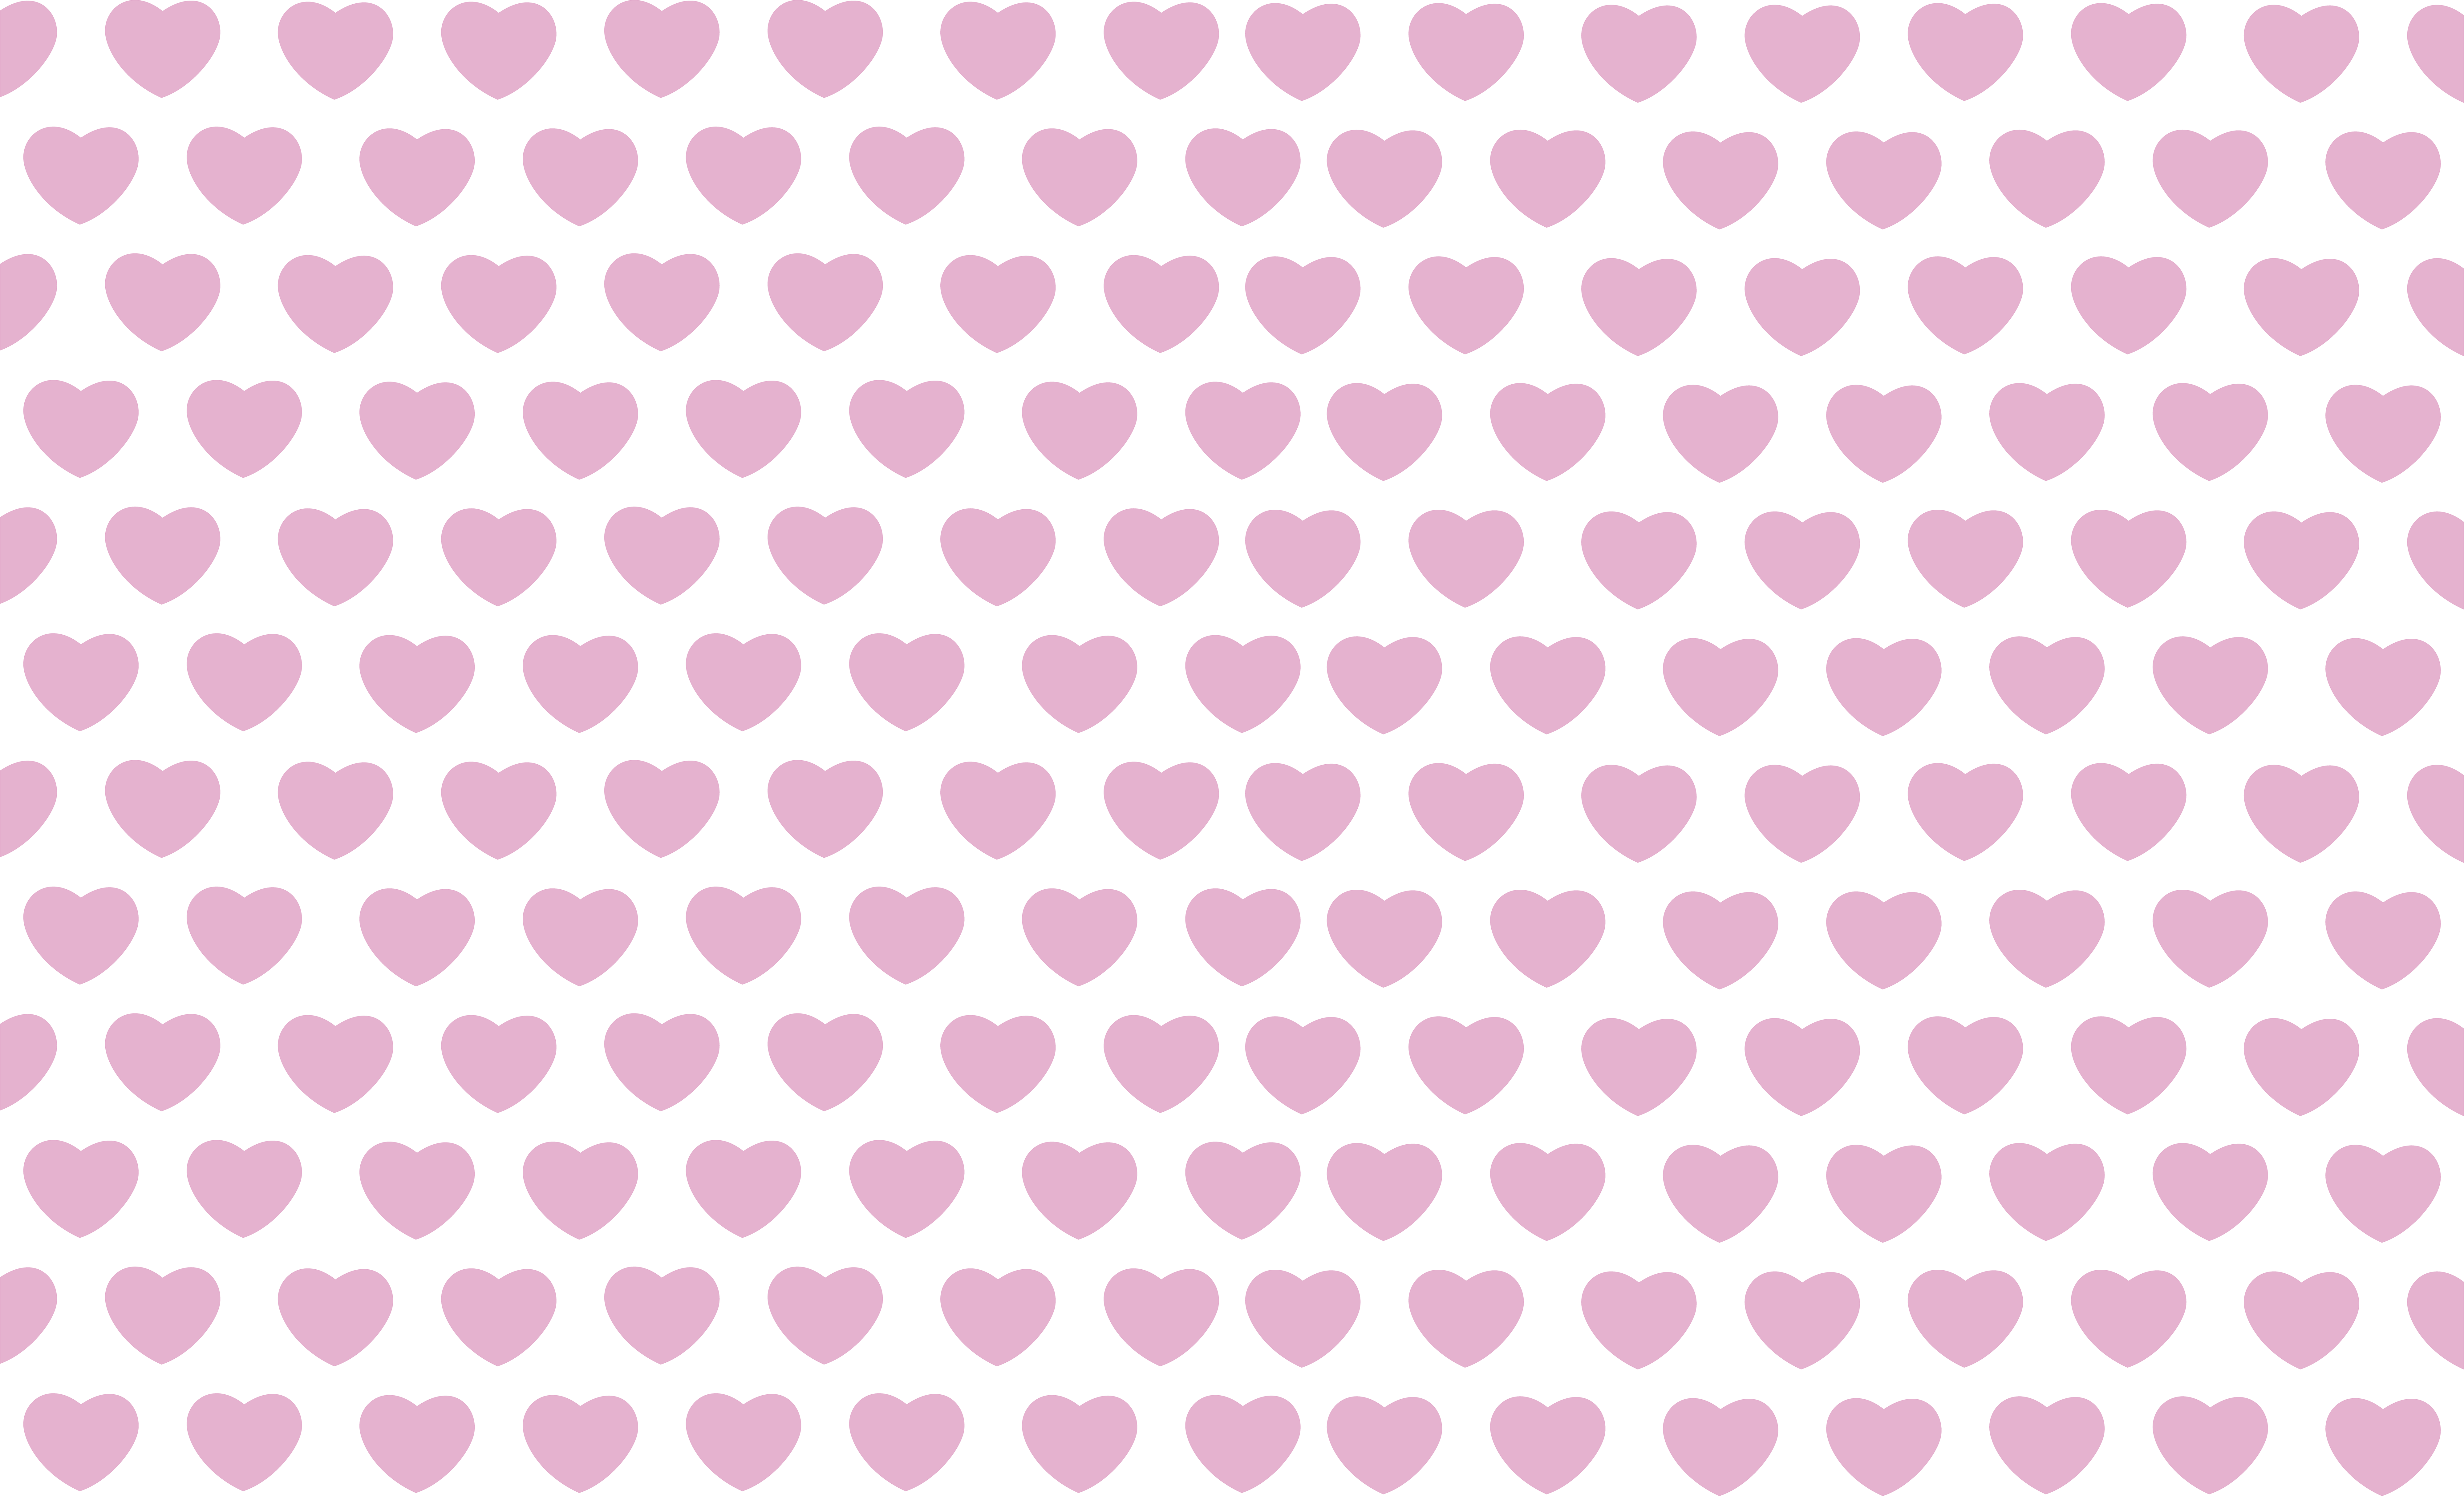 Hearts background png. For transparent clip art